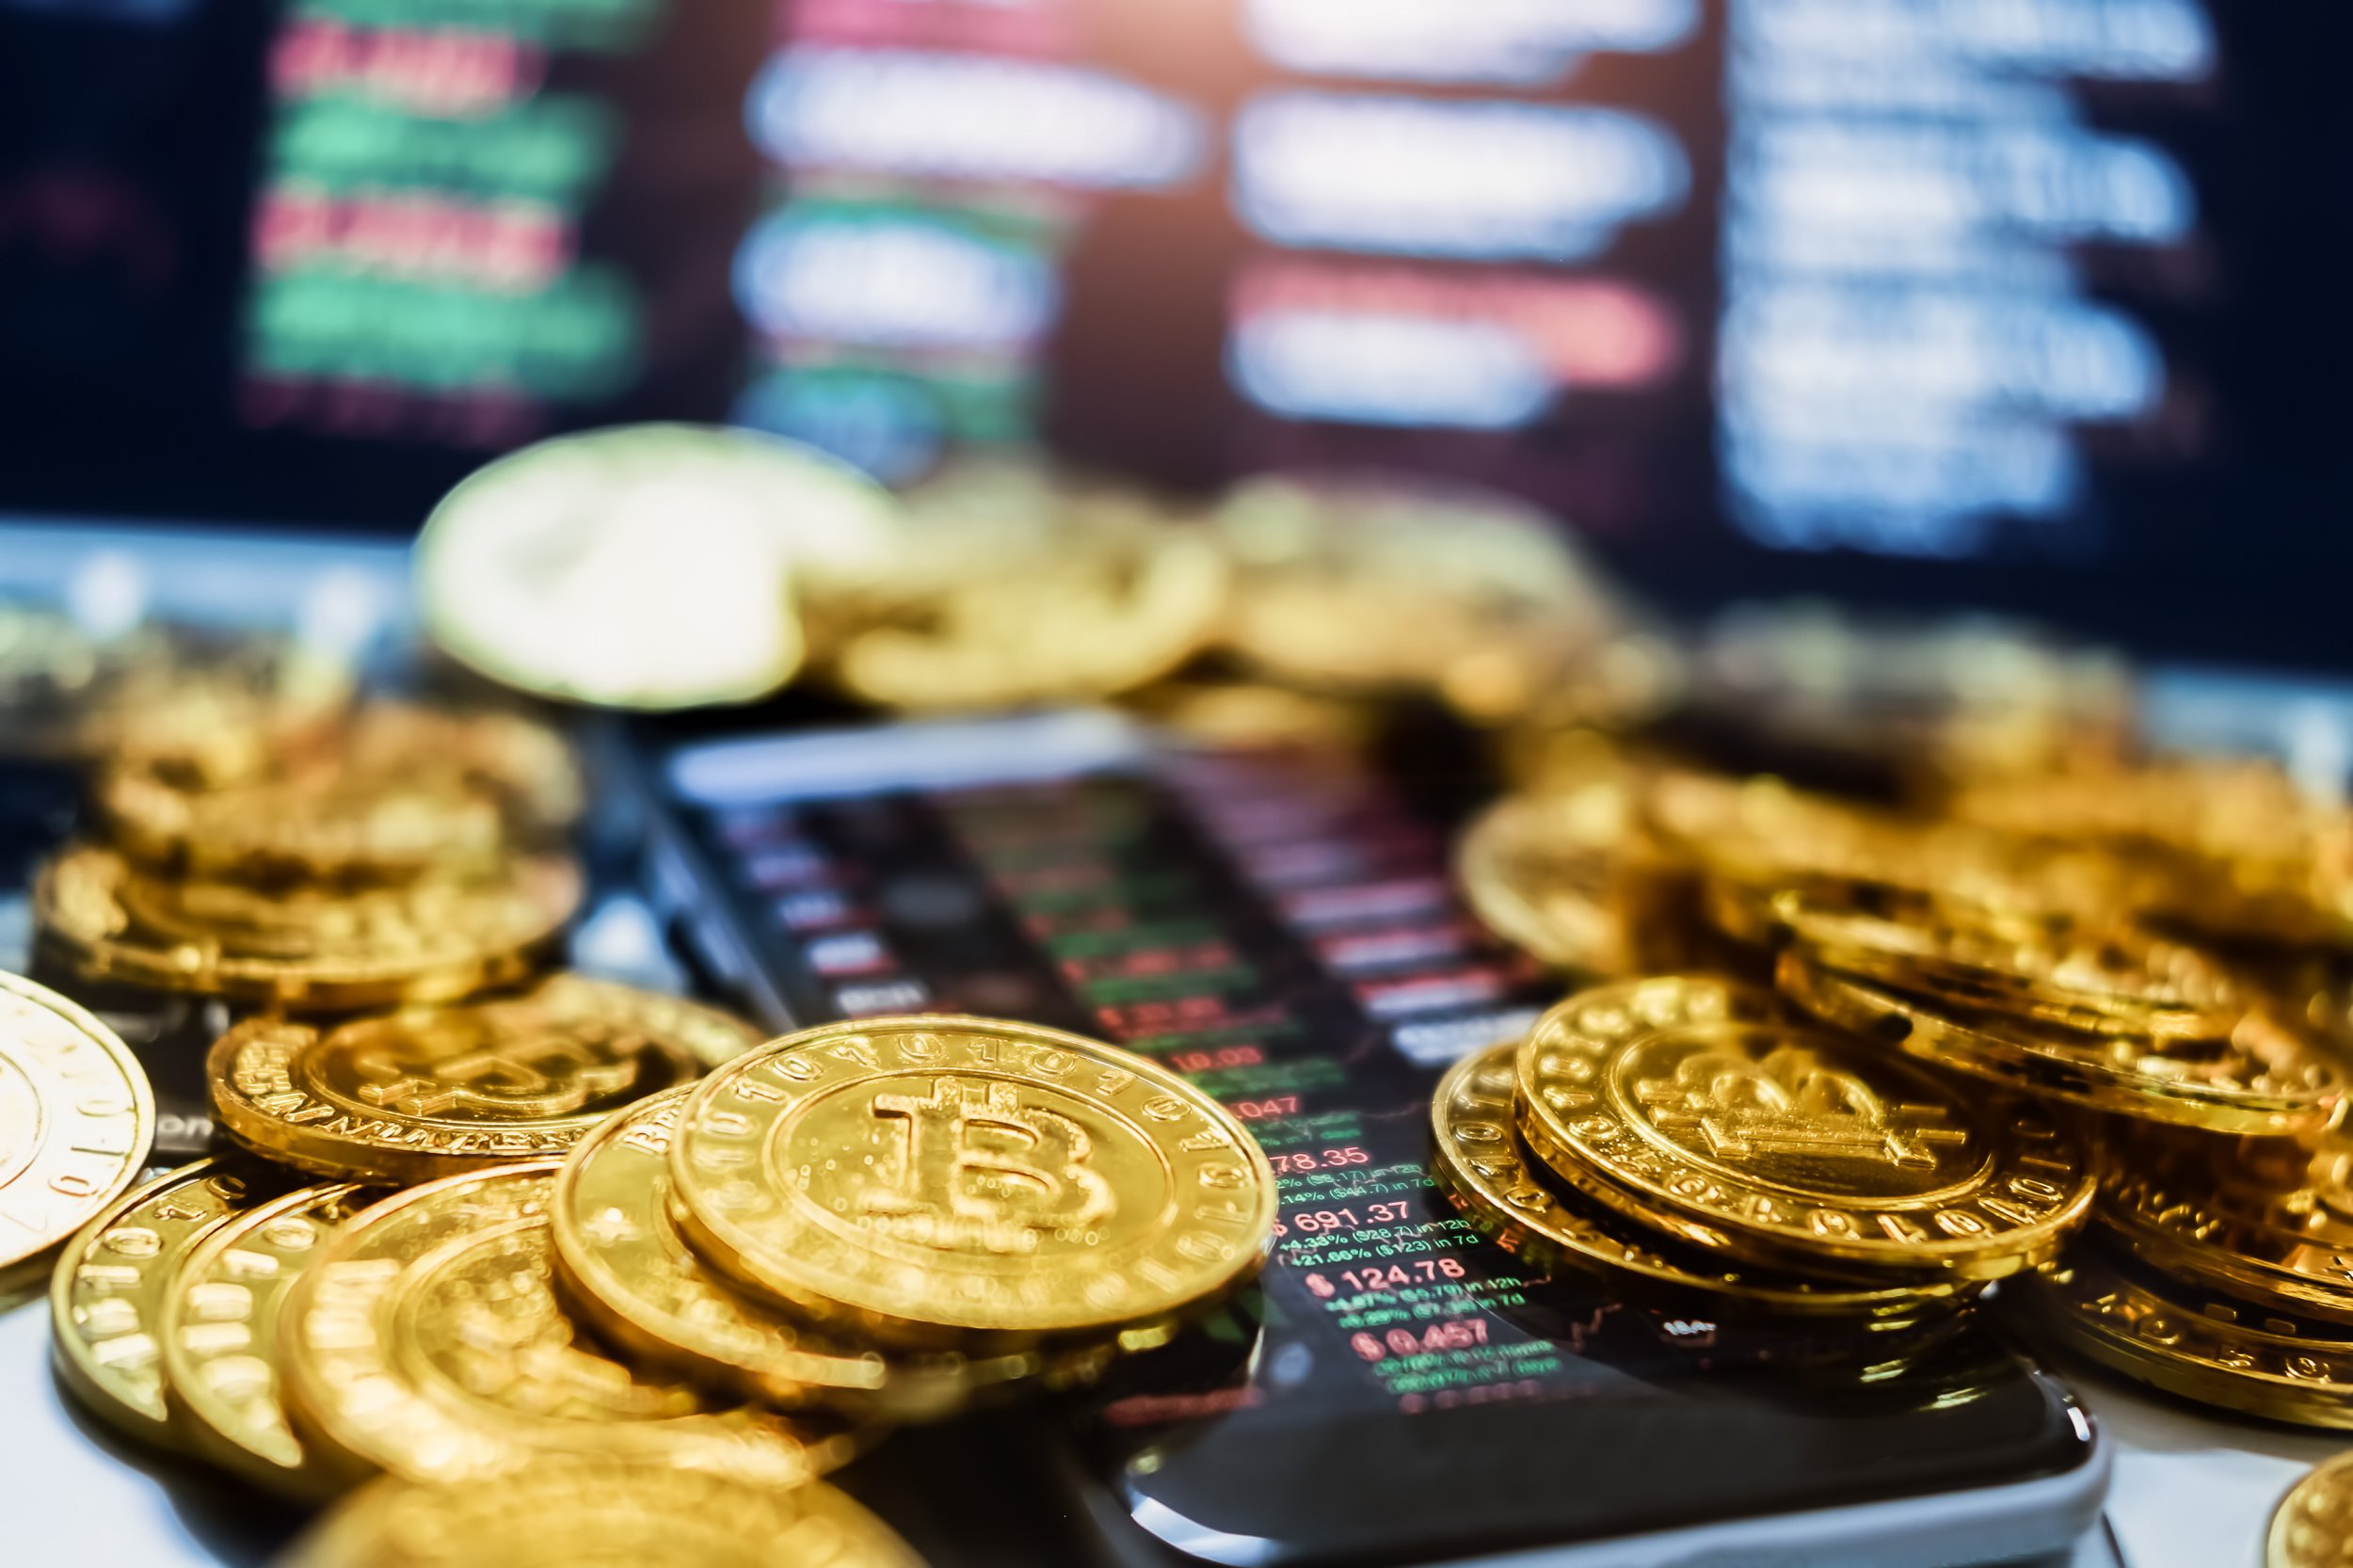 Picture of coins representing digital cryptocurrency bitcoin that runs controlling blockchain technology